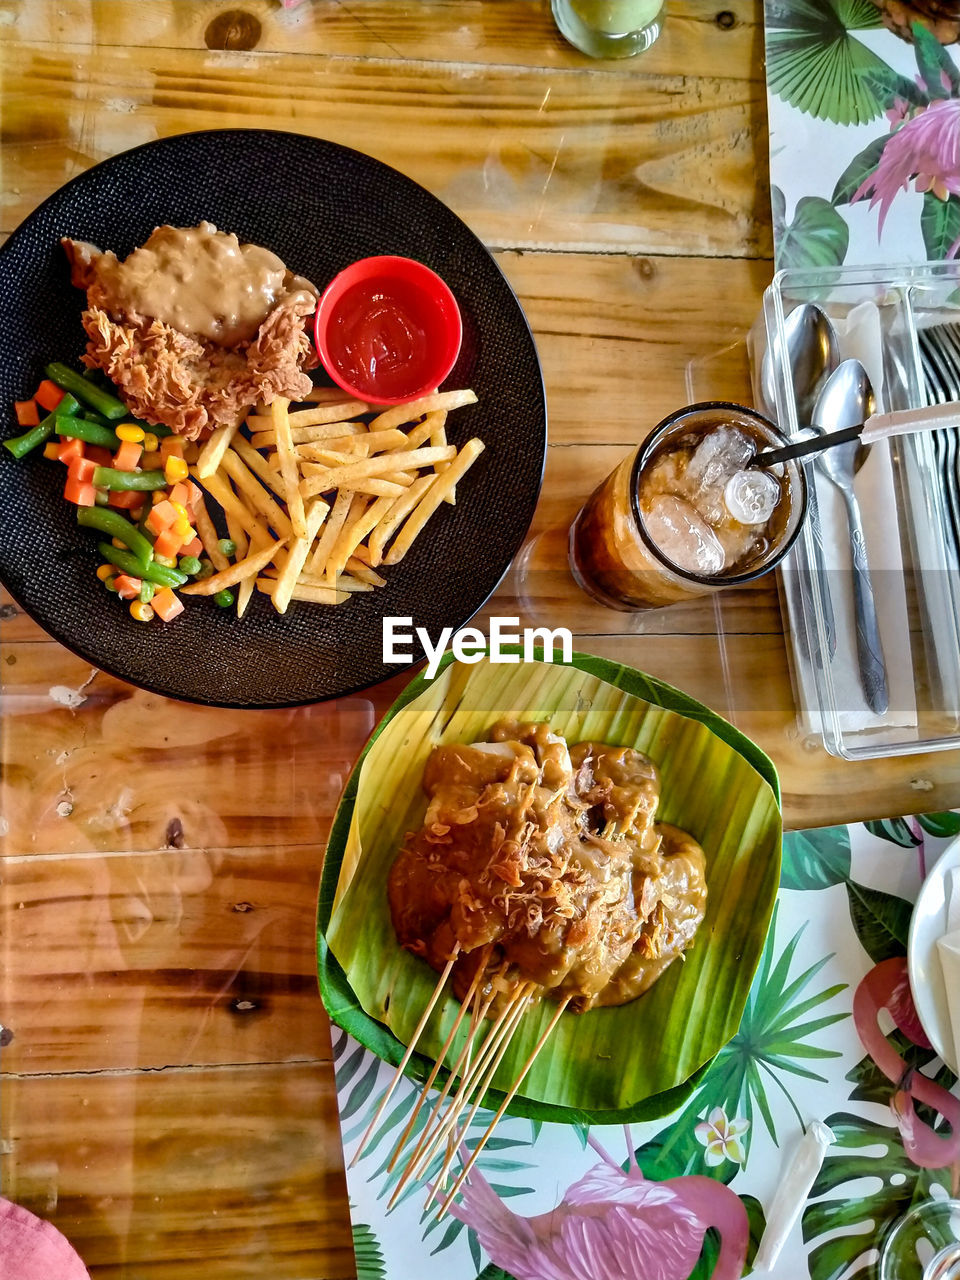 HIGH ANGLE VIEW OF FOOD SERVED WITH TABLE